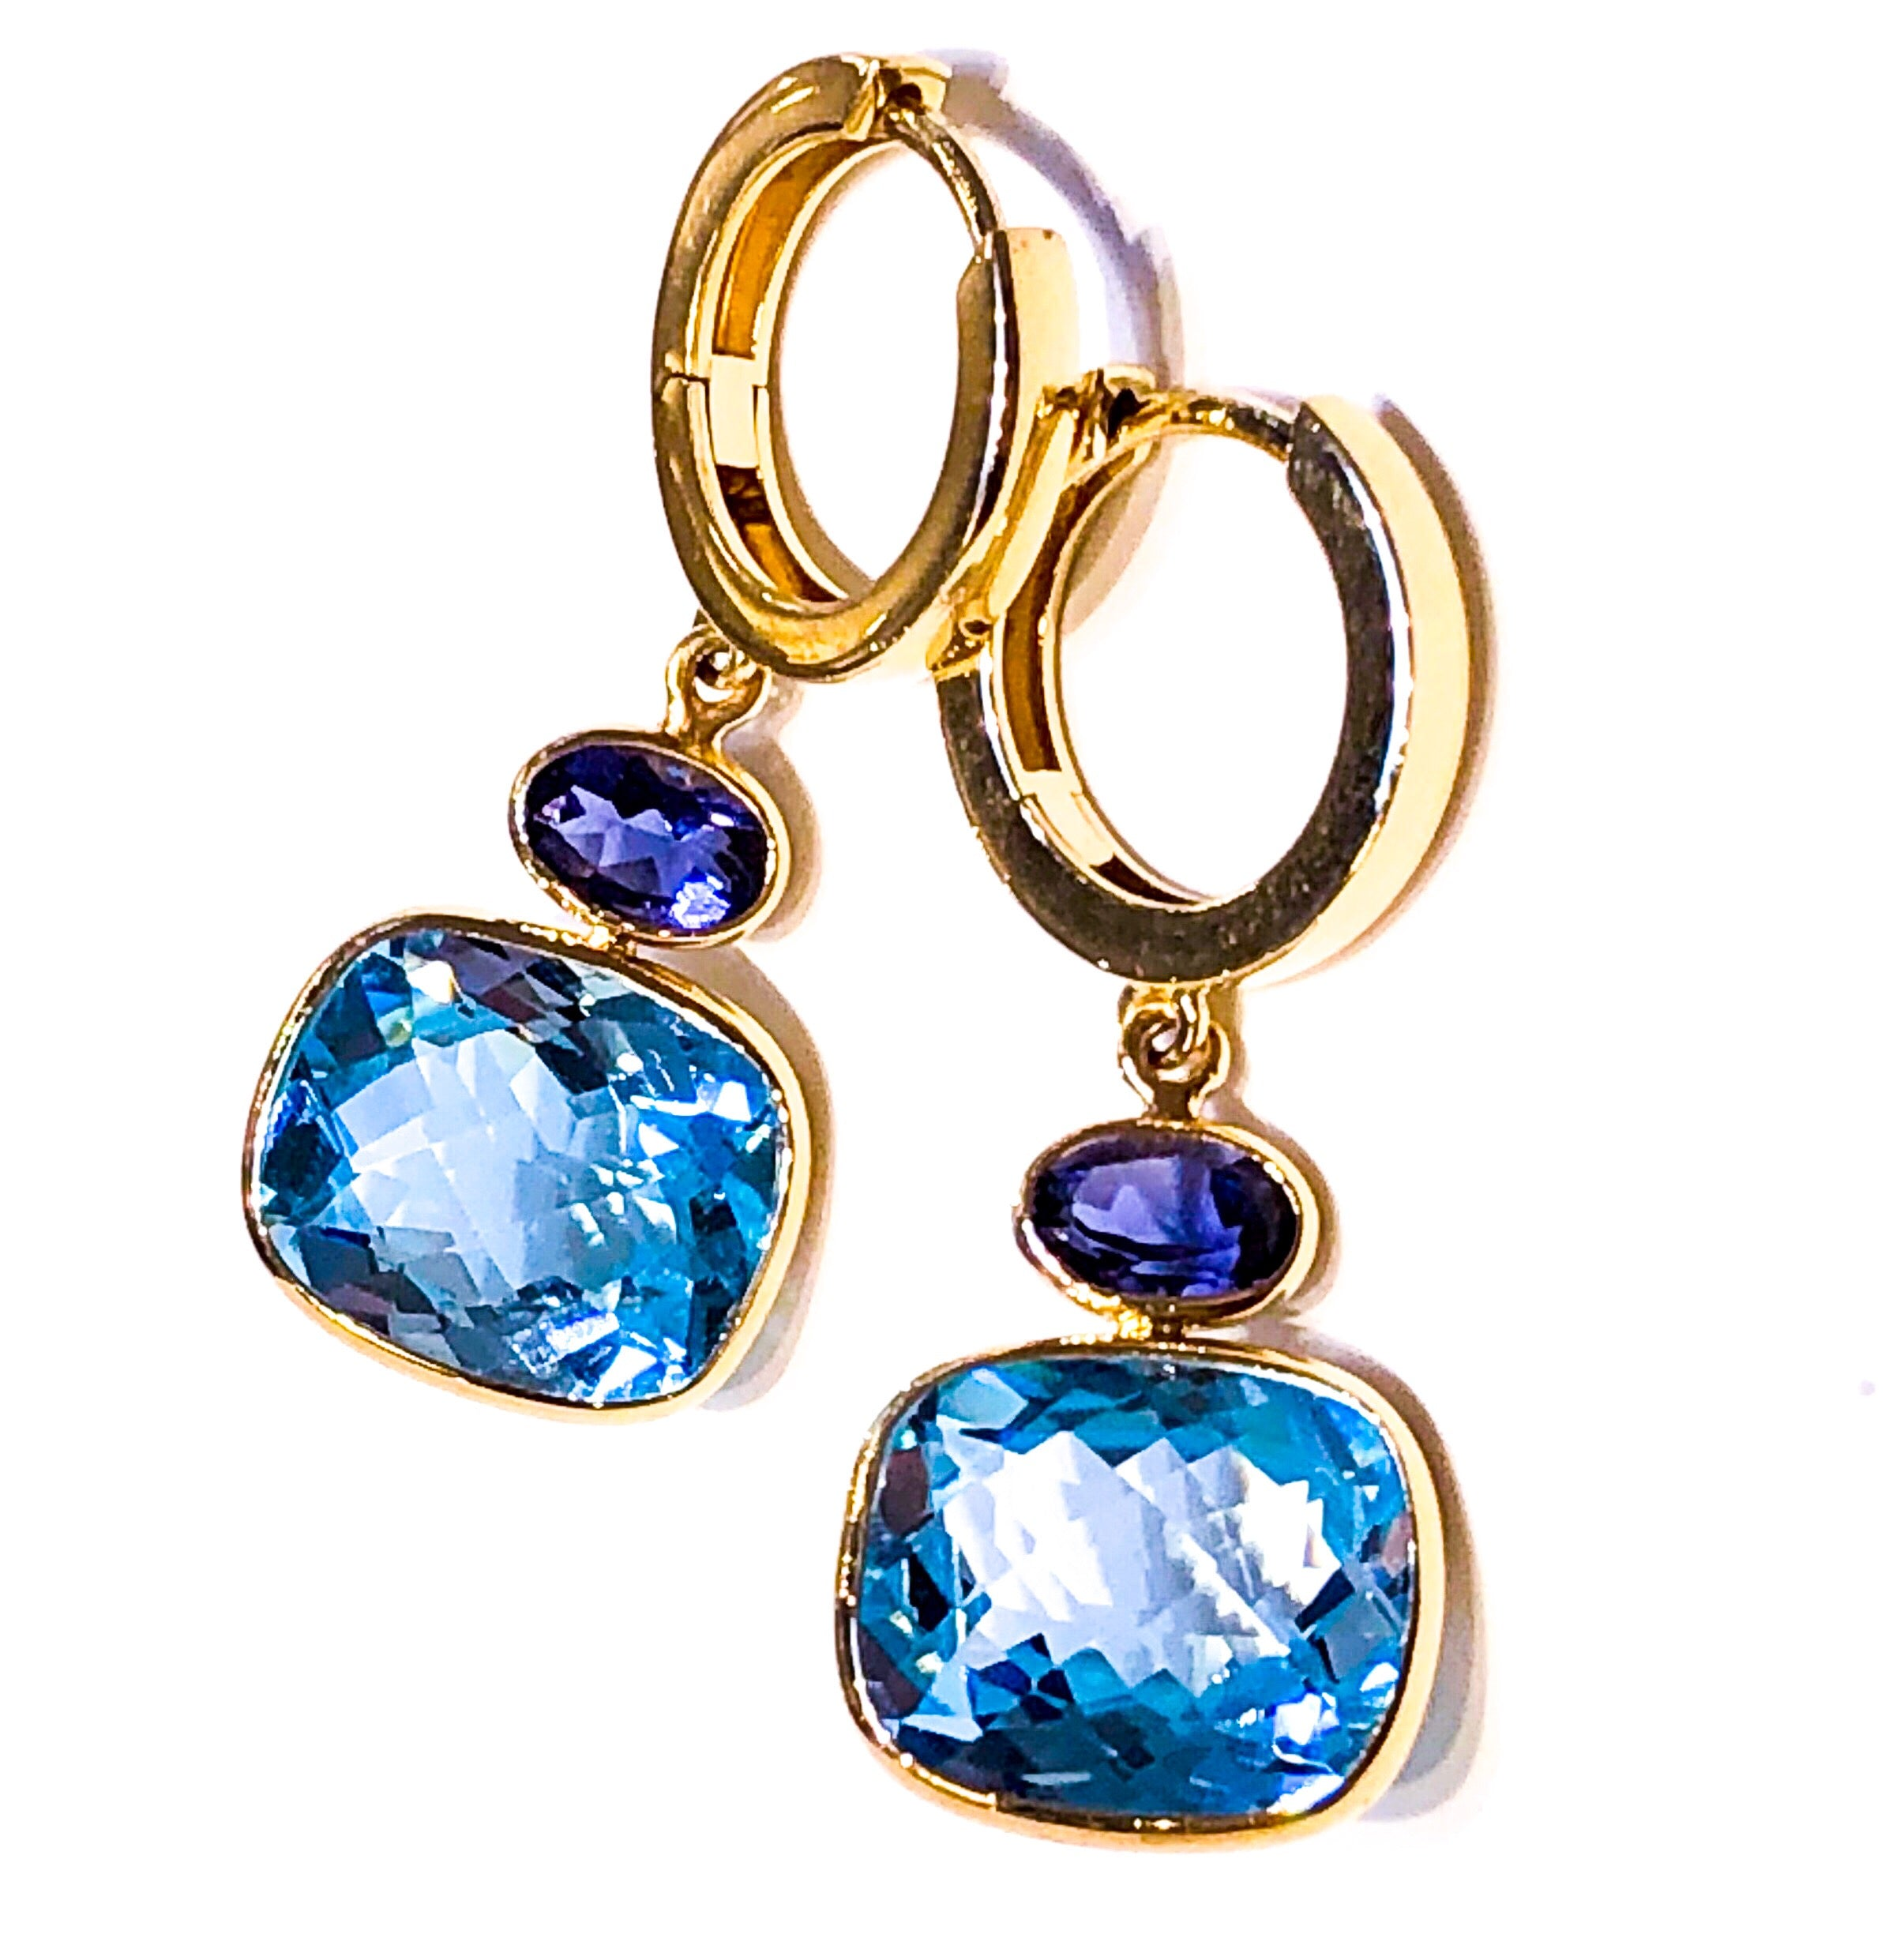 Blue Topaz and Iolite Drop Earrings